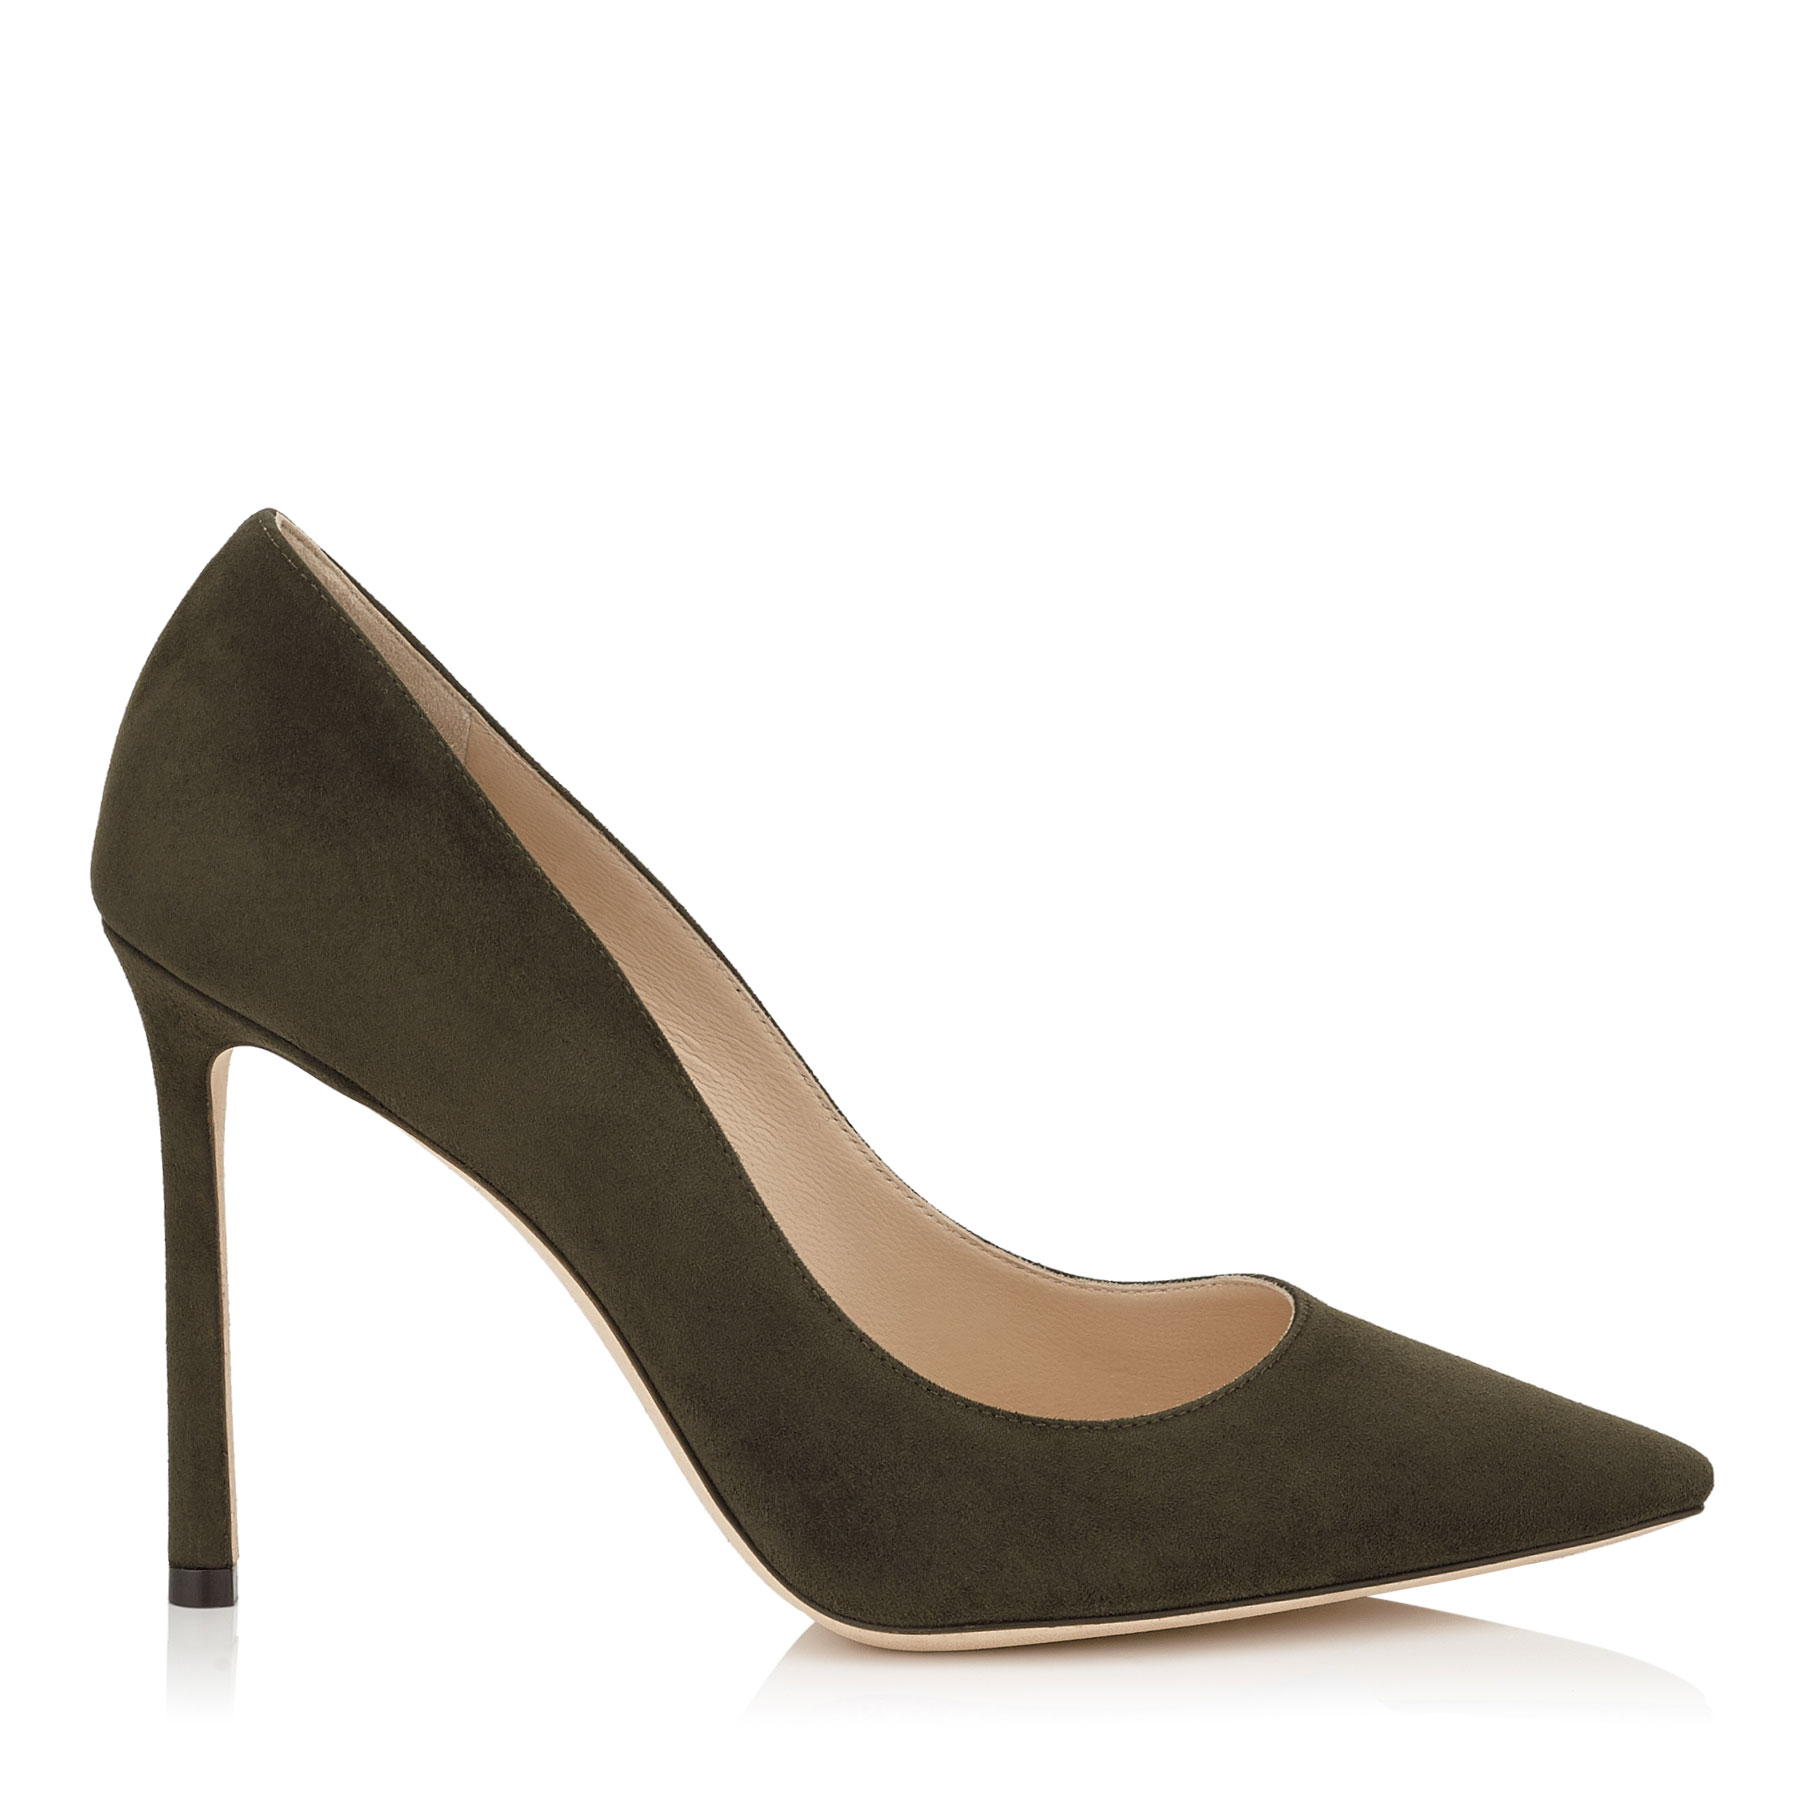 ROMY 100 Army Green Suede Pointy Toe Pumps